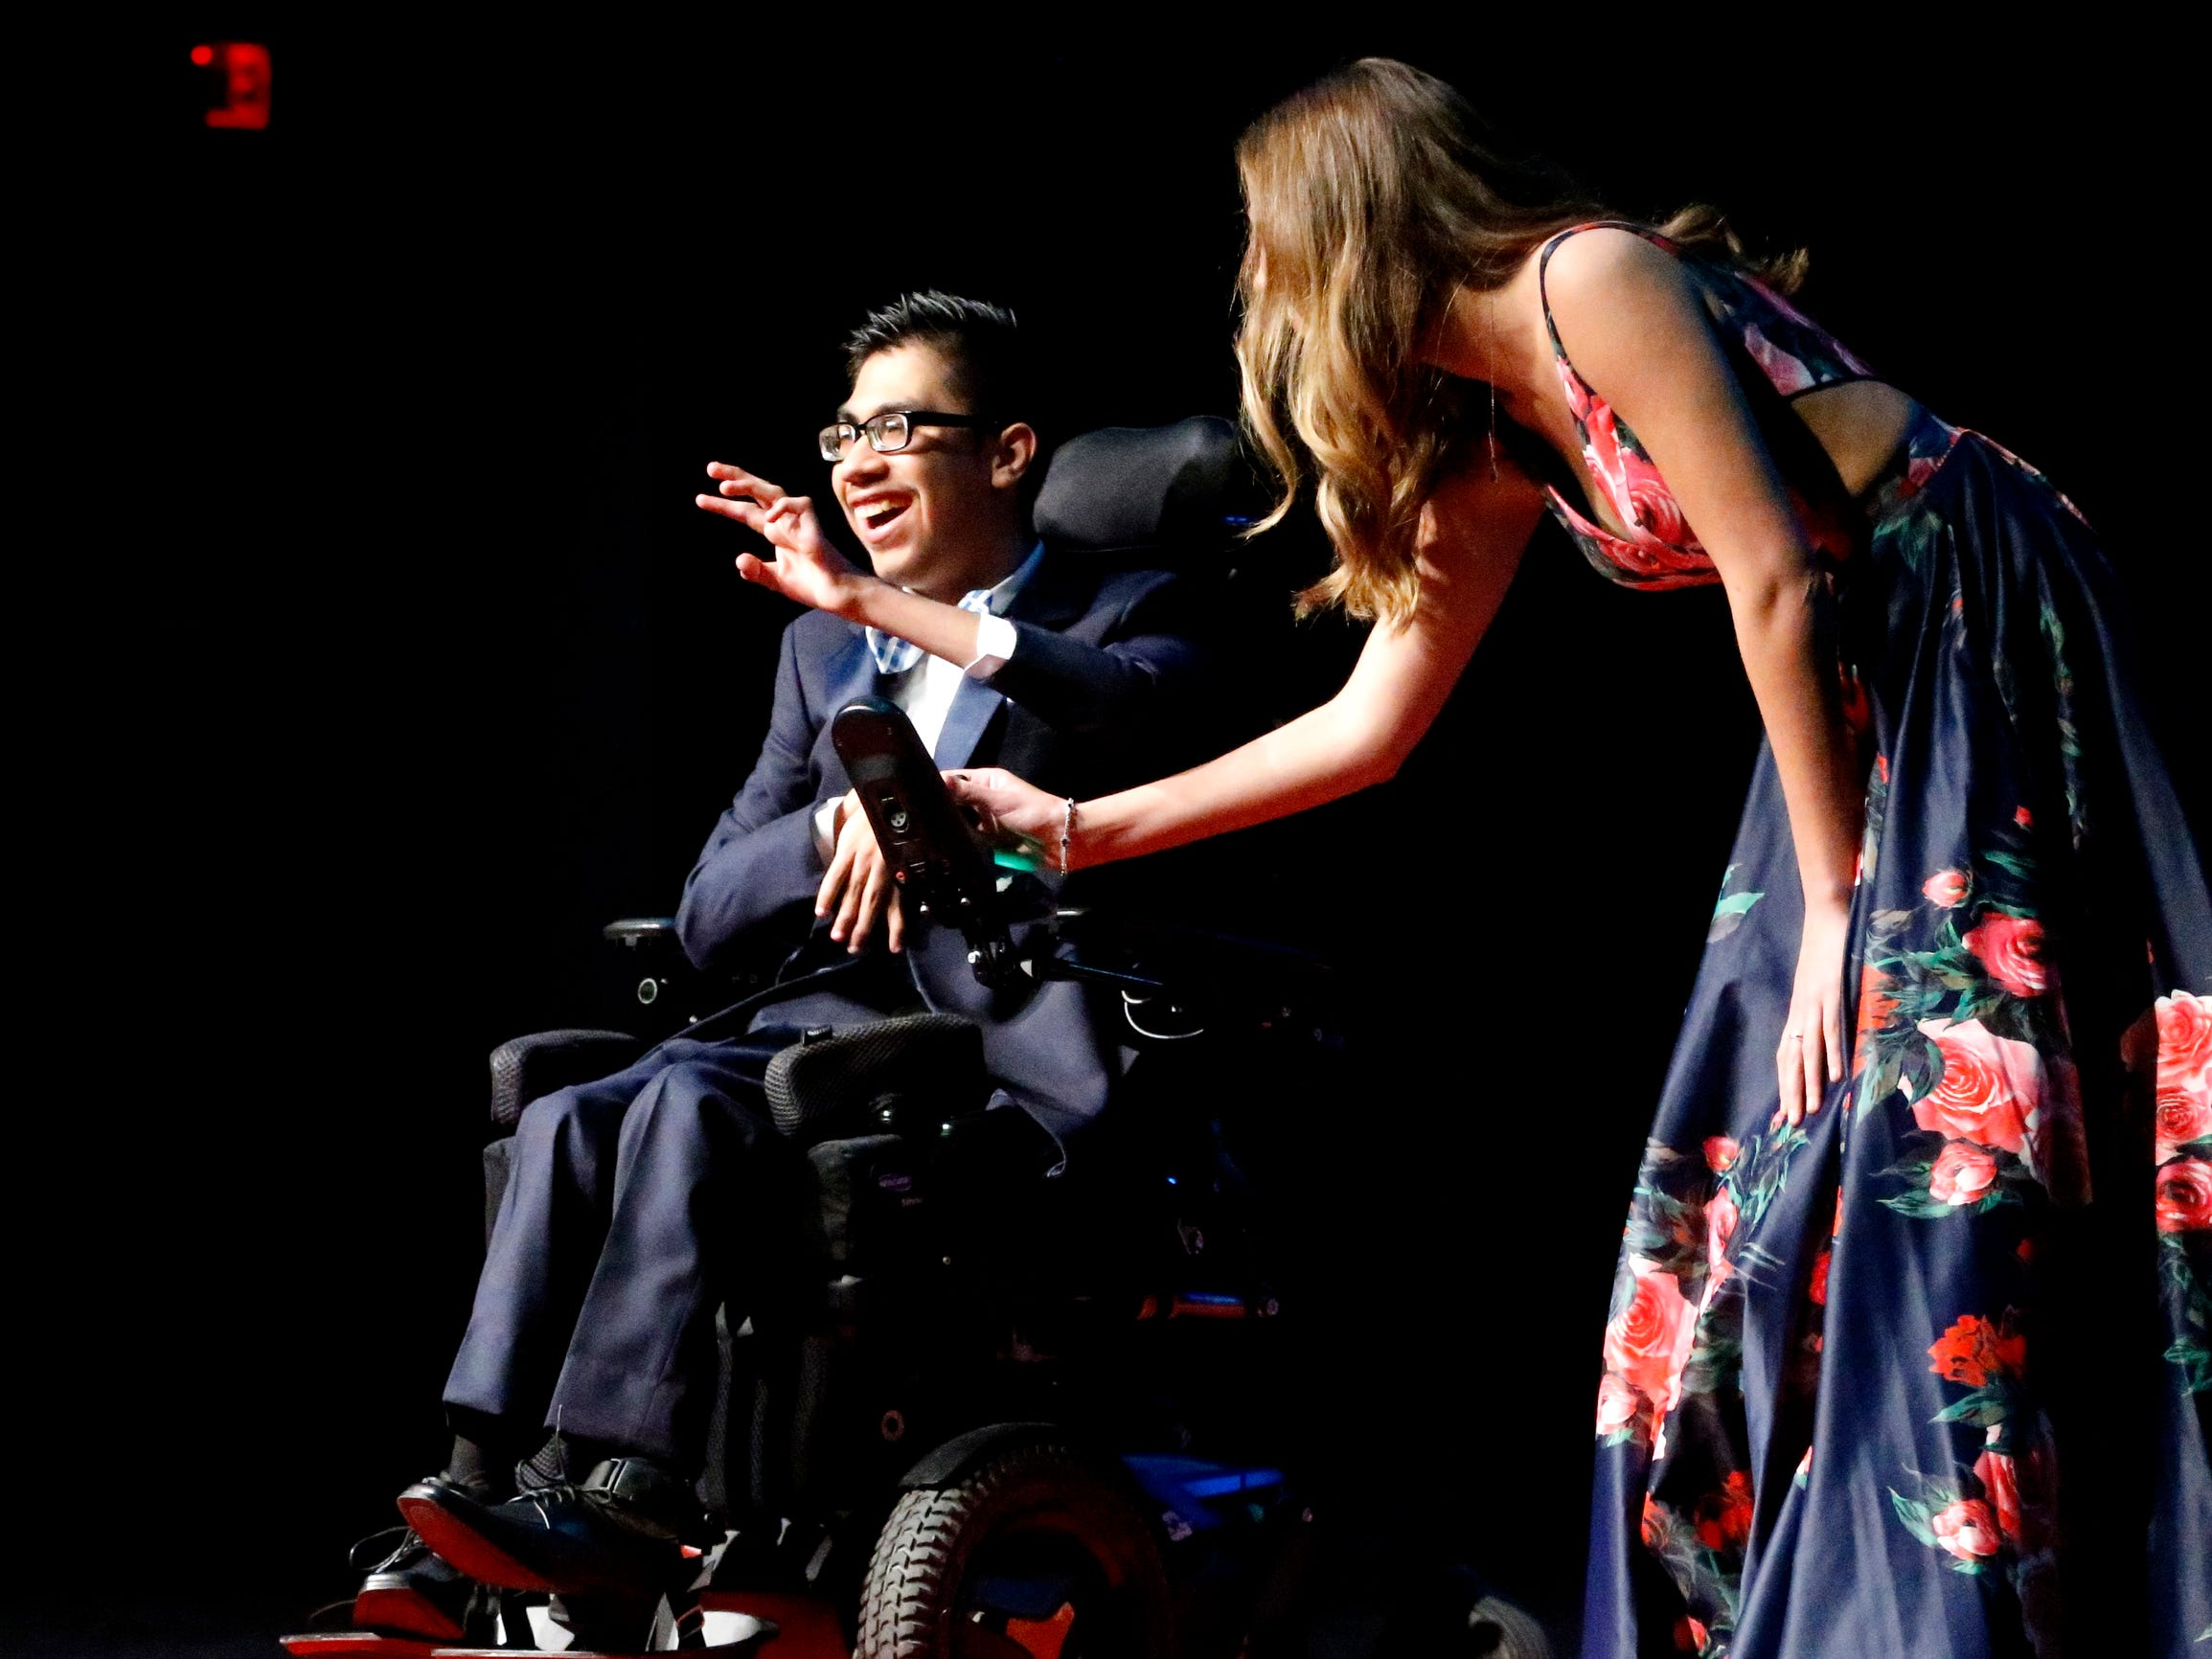 Jason Guerro, left and Ellie Hooper, right show off the latest in prom fashions during the Siegel Prom Fashion show on Thursday, Feb. 14, 2019.